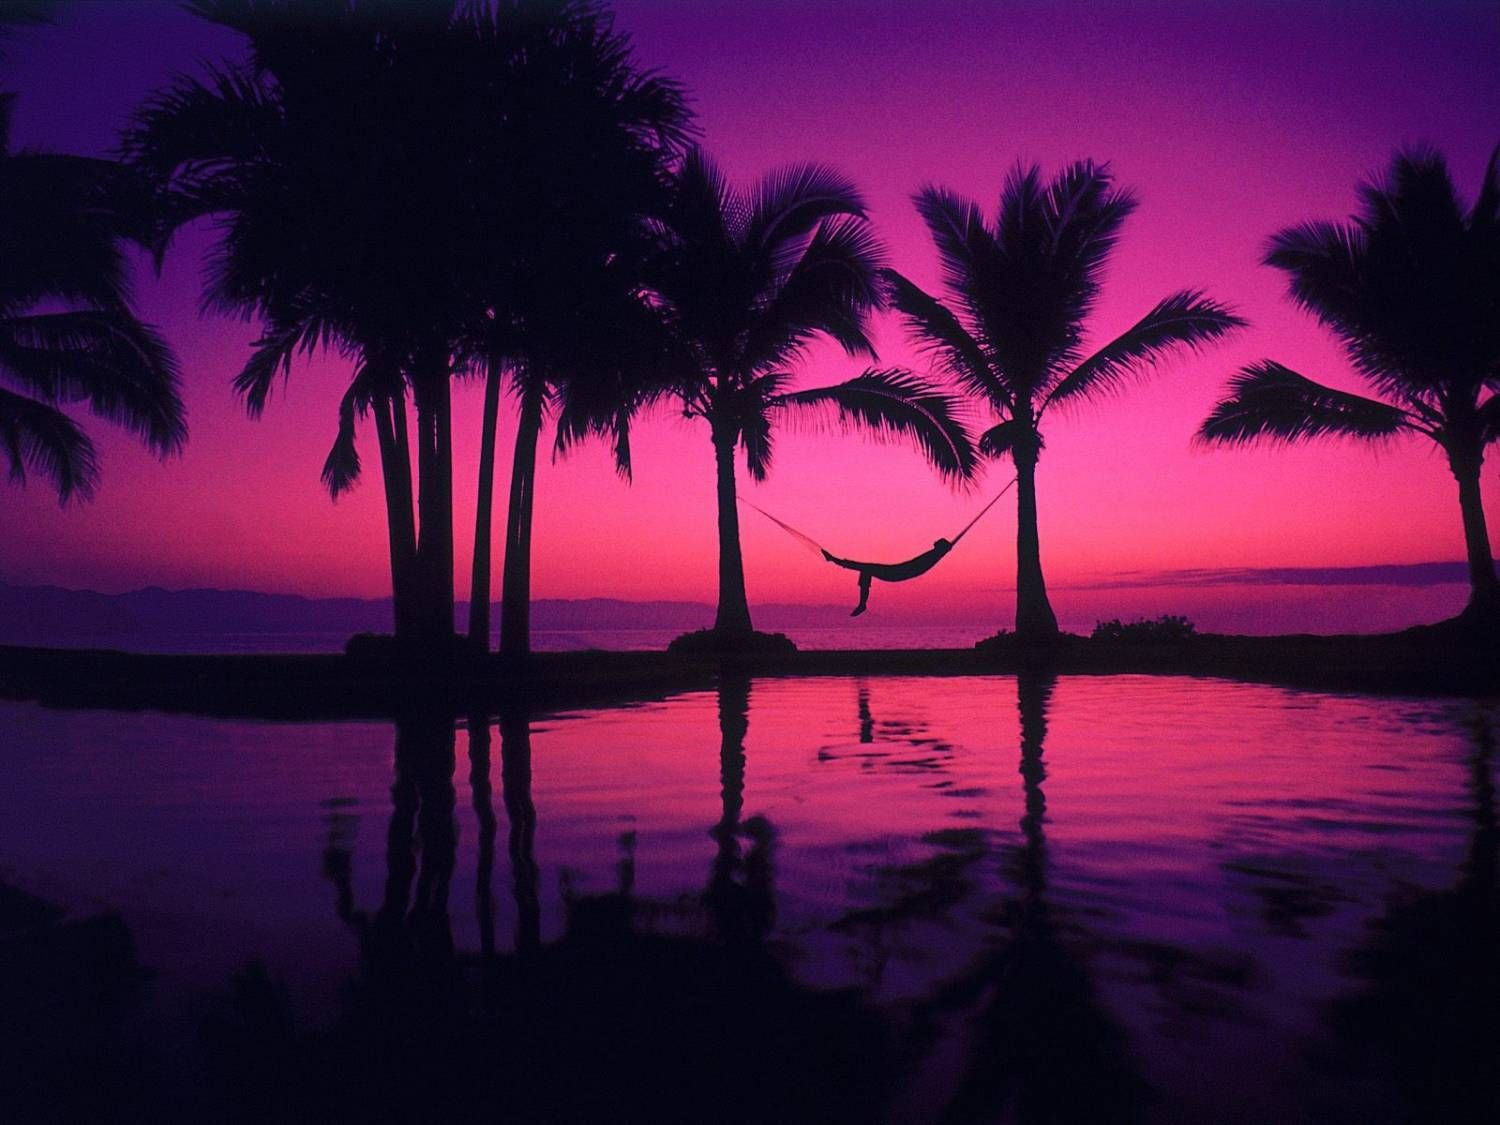 Purple Pictures Photography Purple Sunset Desktop Wallpapers Free Download Backgrounds Pictu Beach Sunset Wallpaper Puerto Vallarta Mexico Sunset Wallpaper